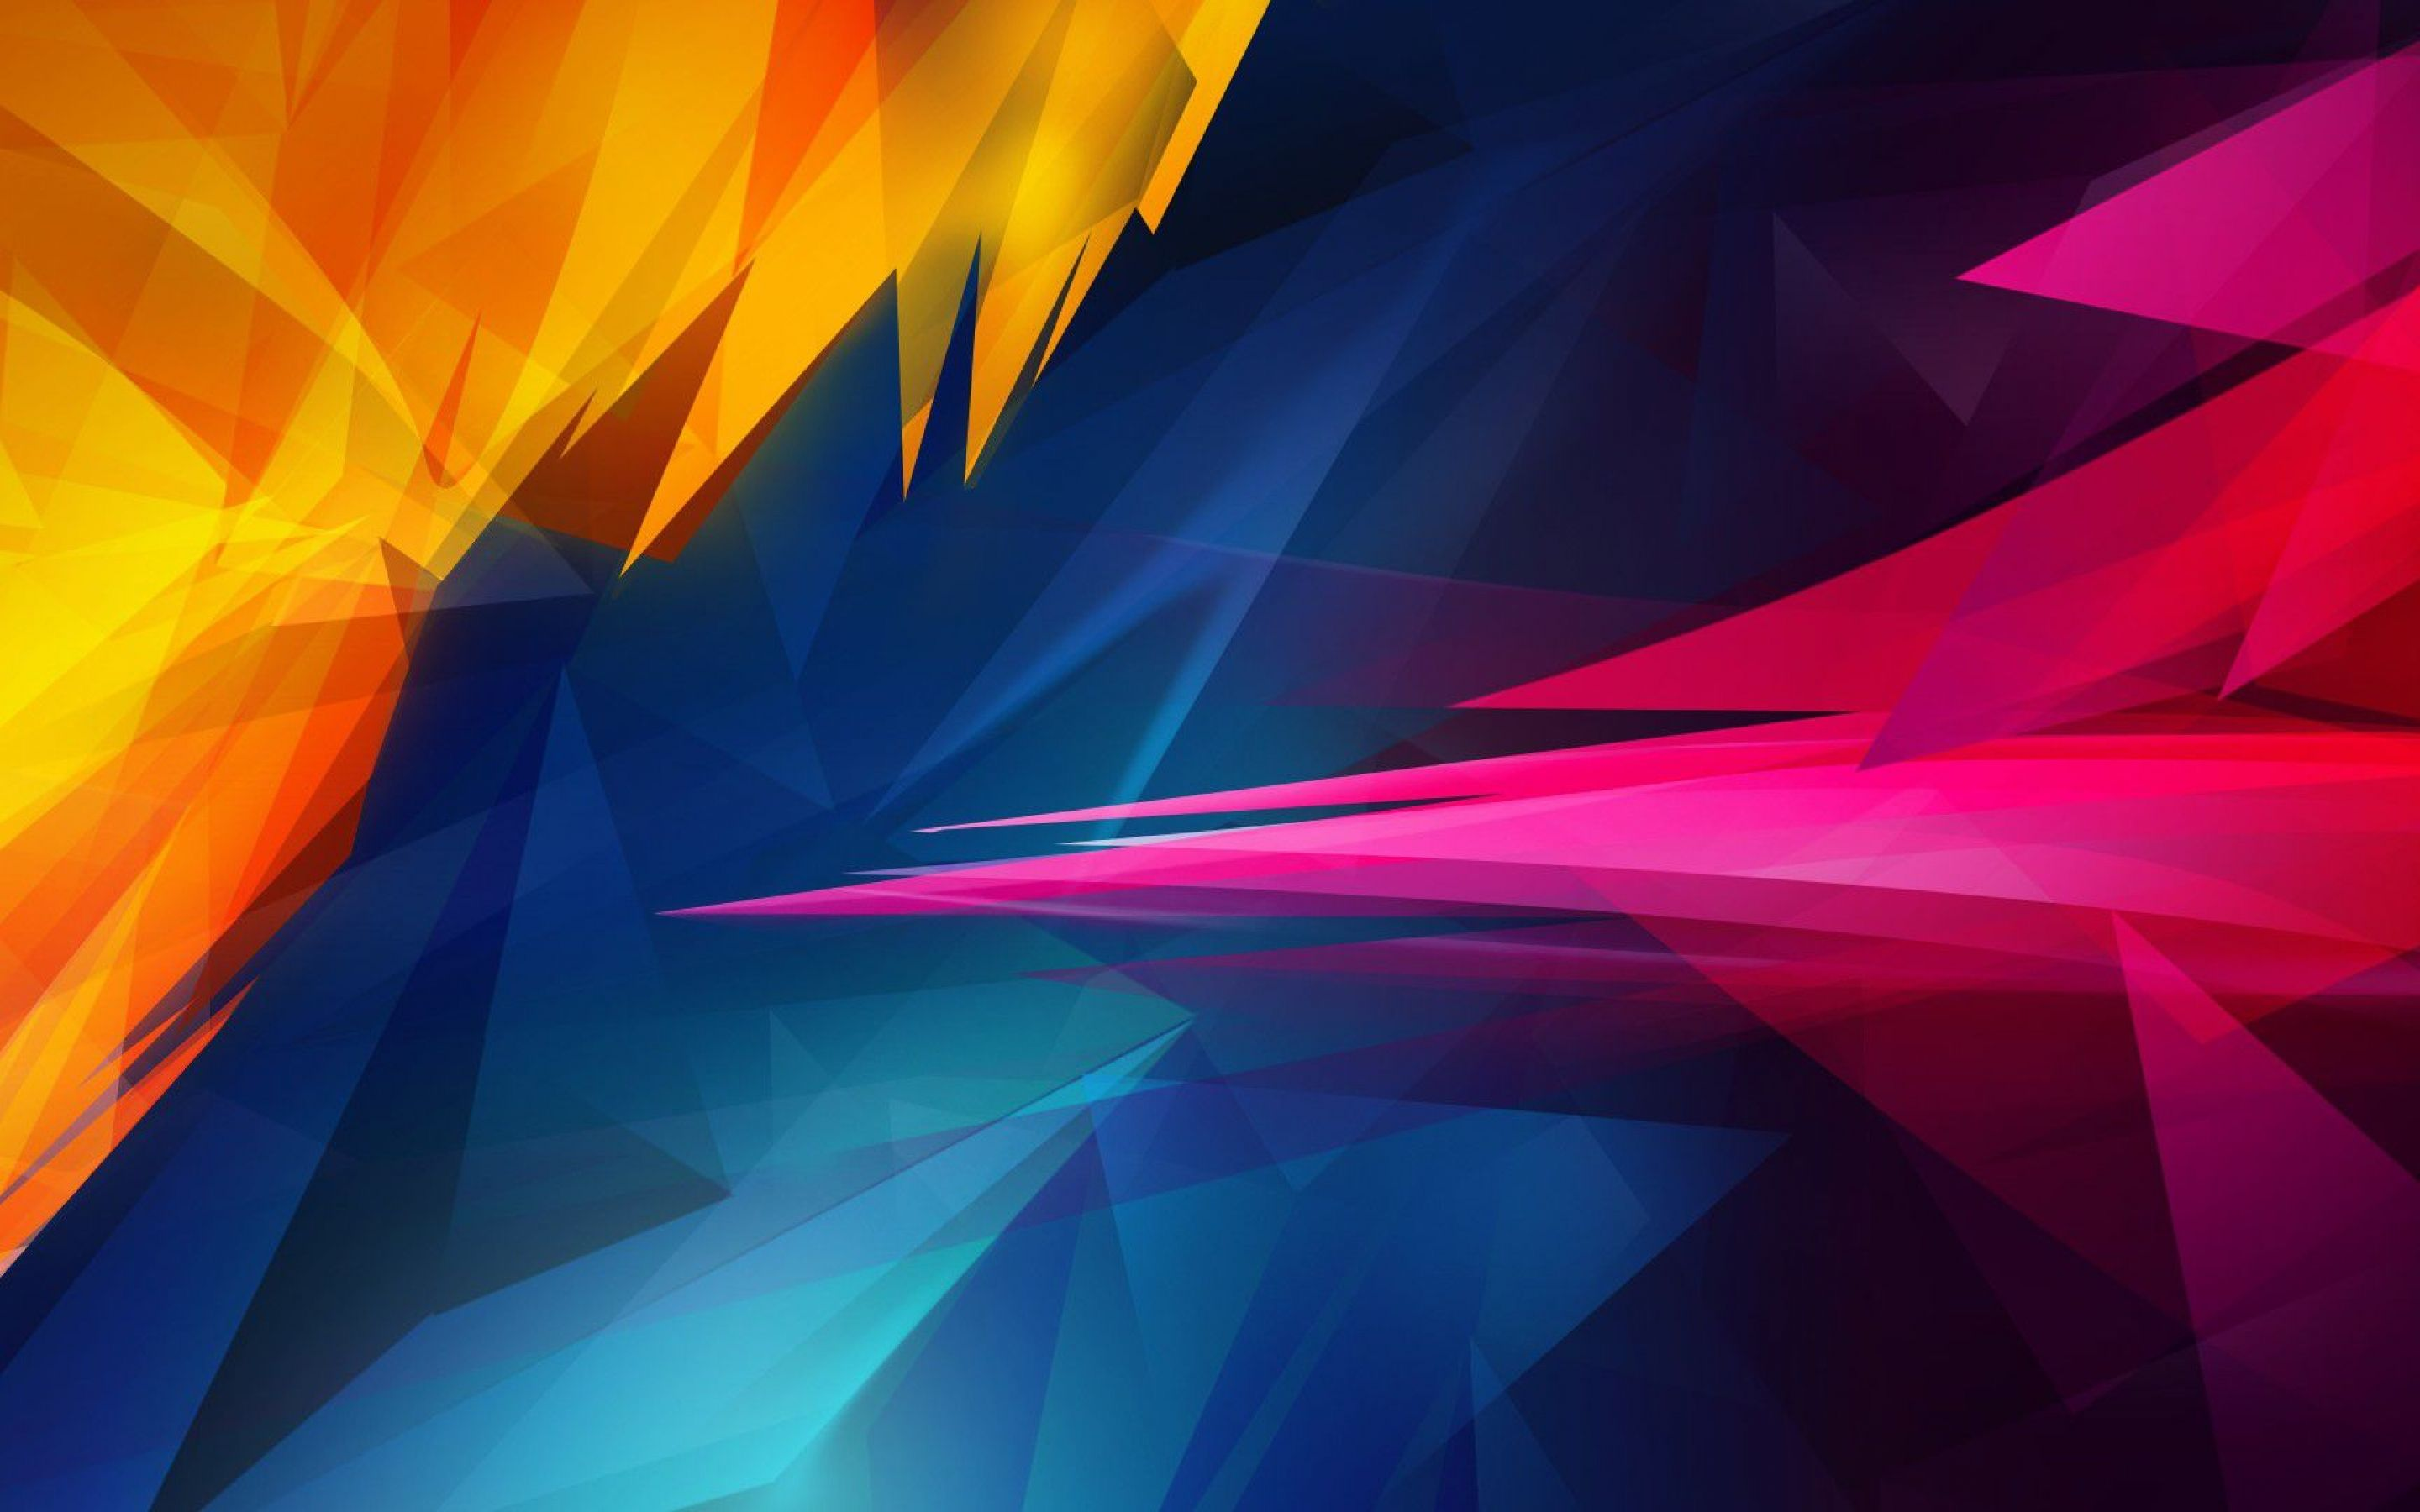 2880 X 1800 Retina Abstract Wallpapers Top Free 2880 X 1800 Retina Abstract Backgrounds Wallpaperaccess